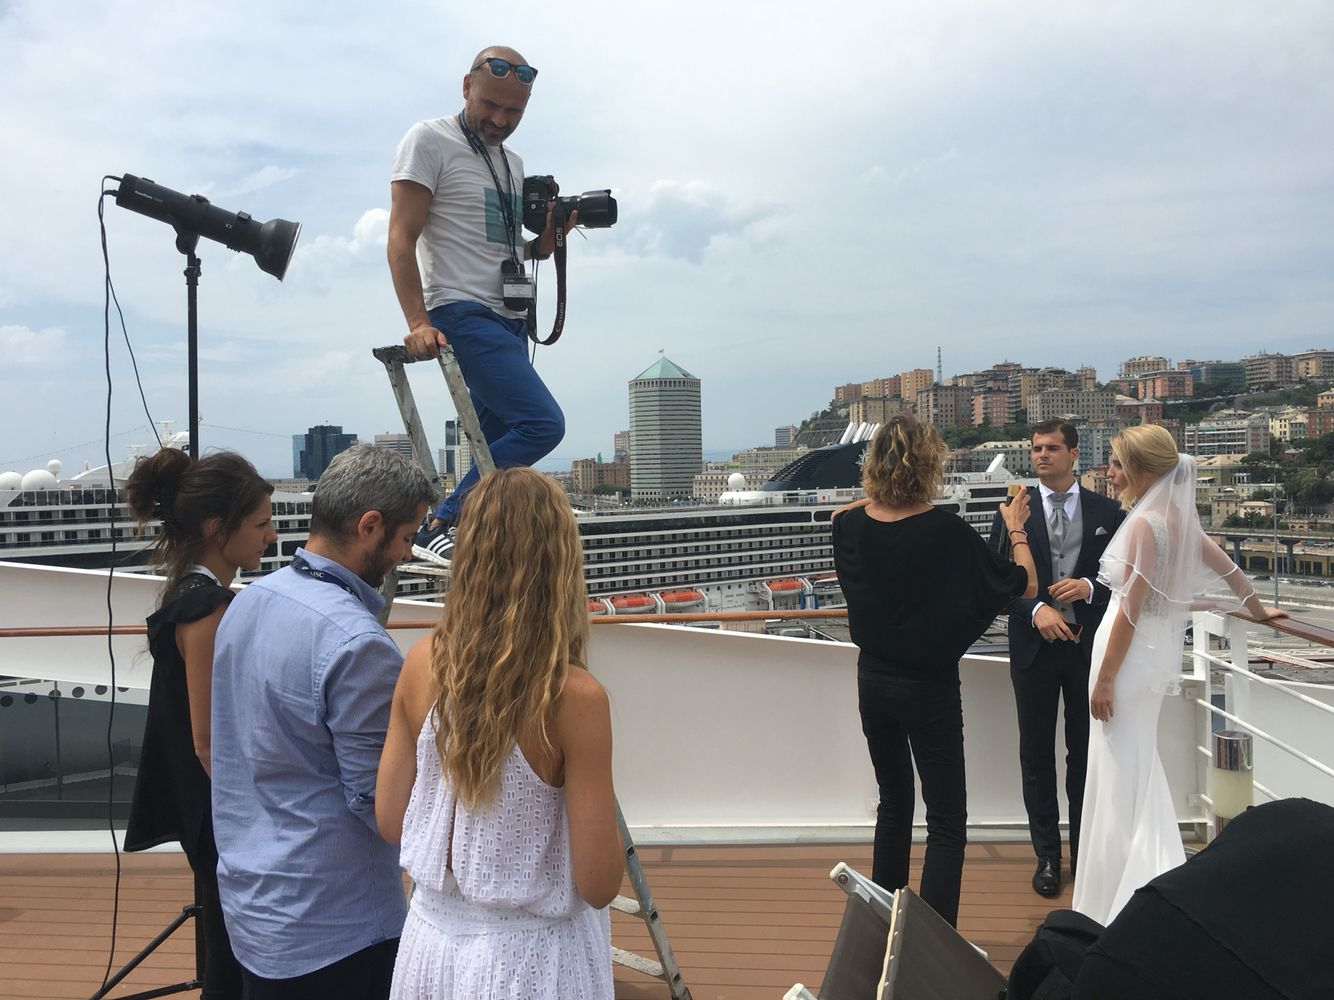 Backstage Shooting fotografico a bordo di MSC Fantasia